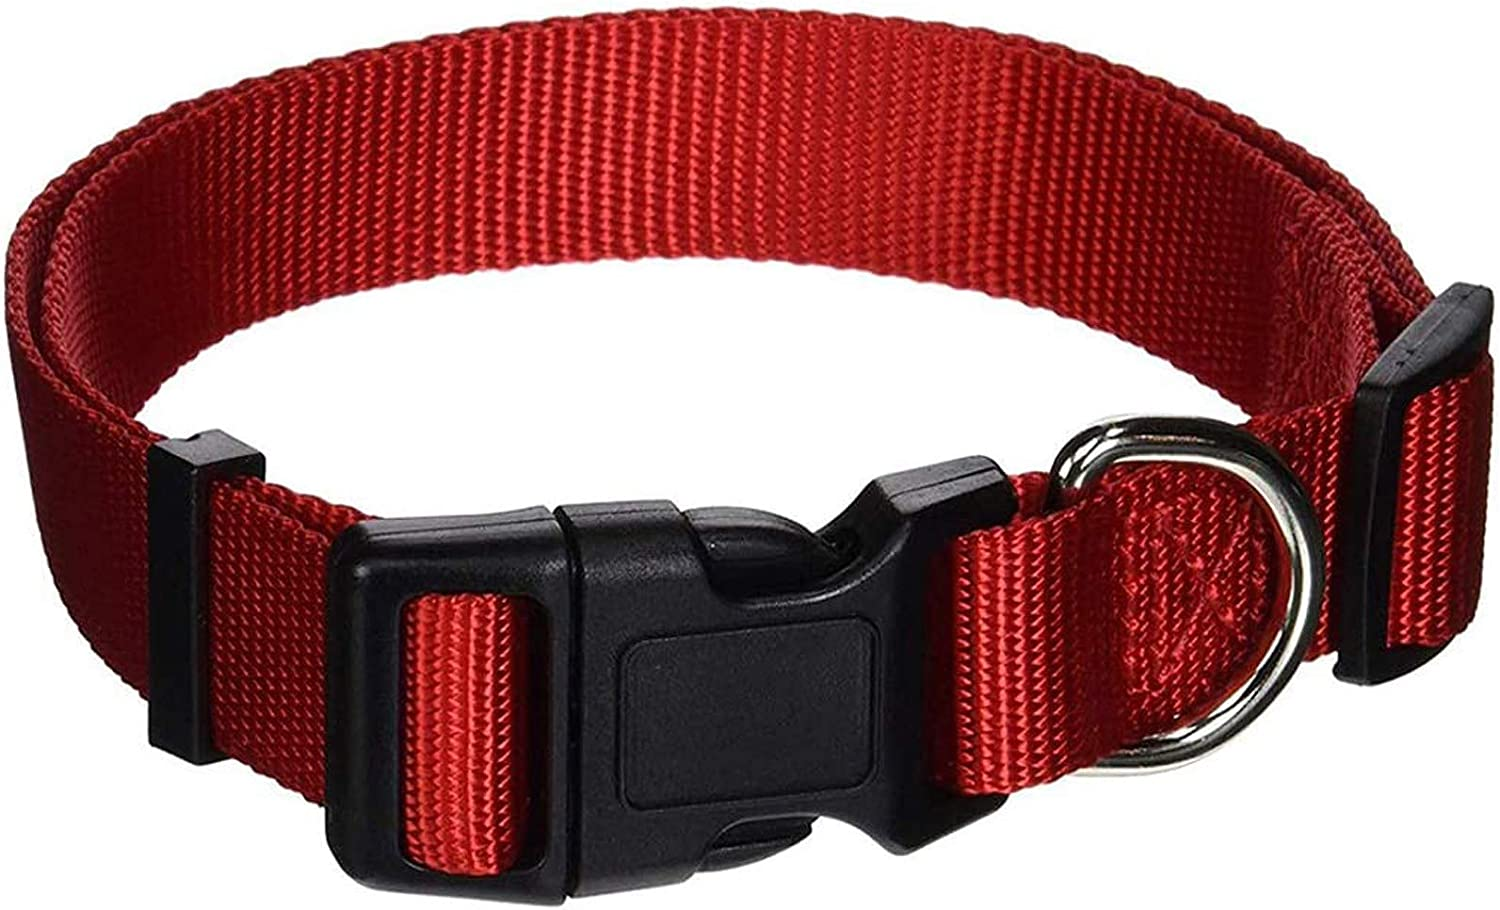 AEDILYS Adjustable Nylon Dog Collar Classic Solid Colors for Small Sized Dogs Neck, Multicolor: Sports & Outdoors